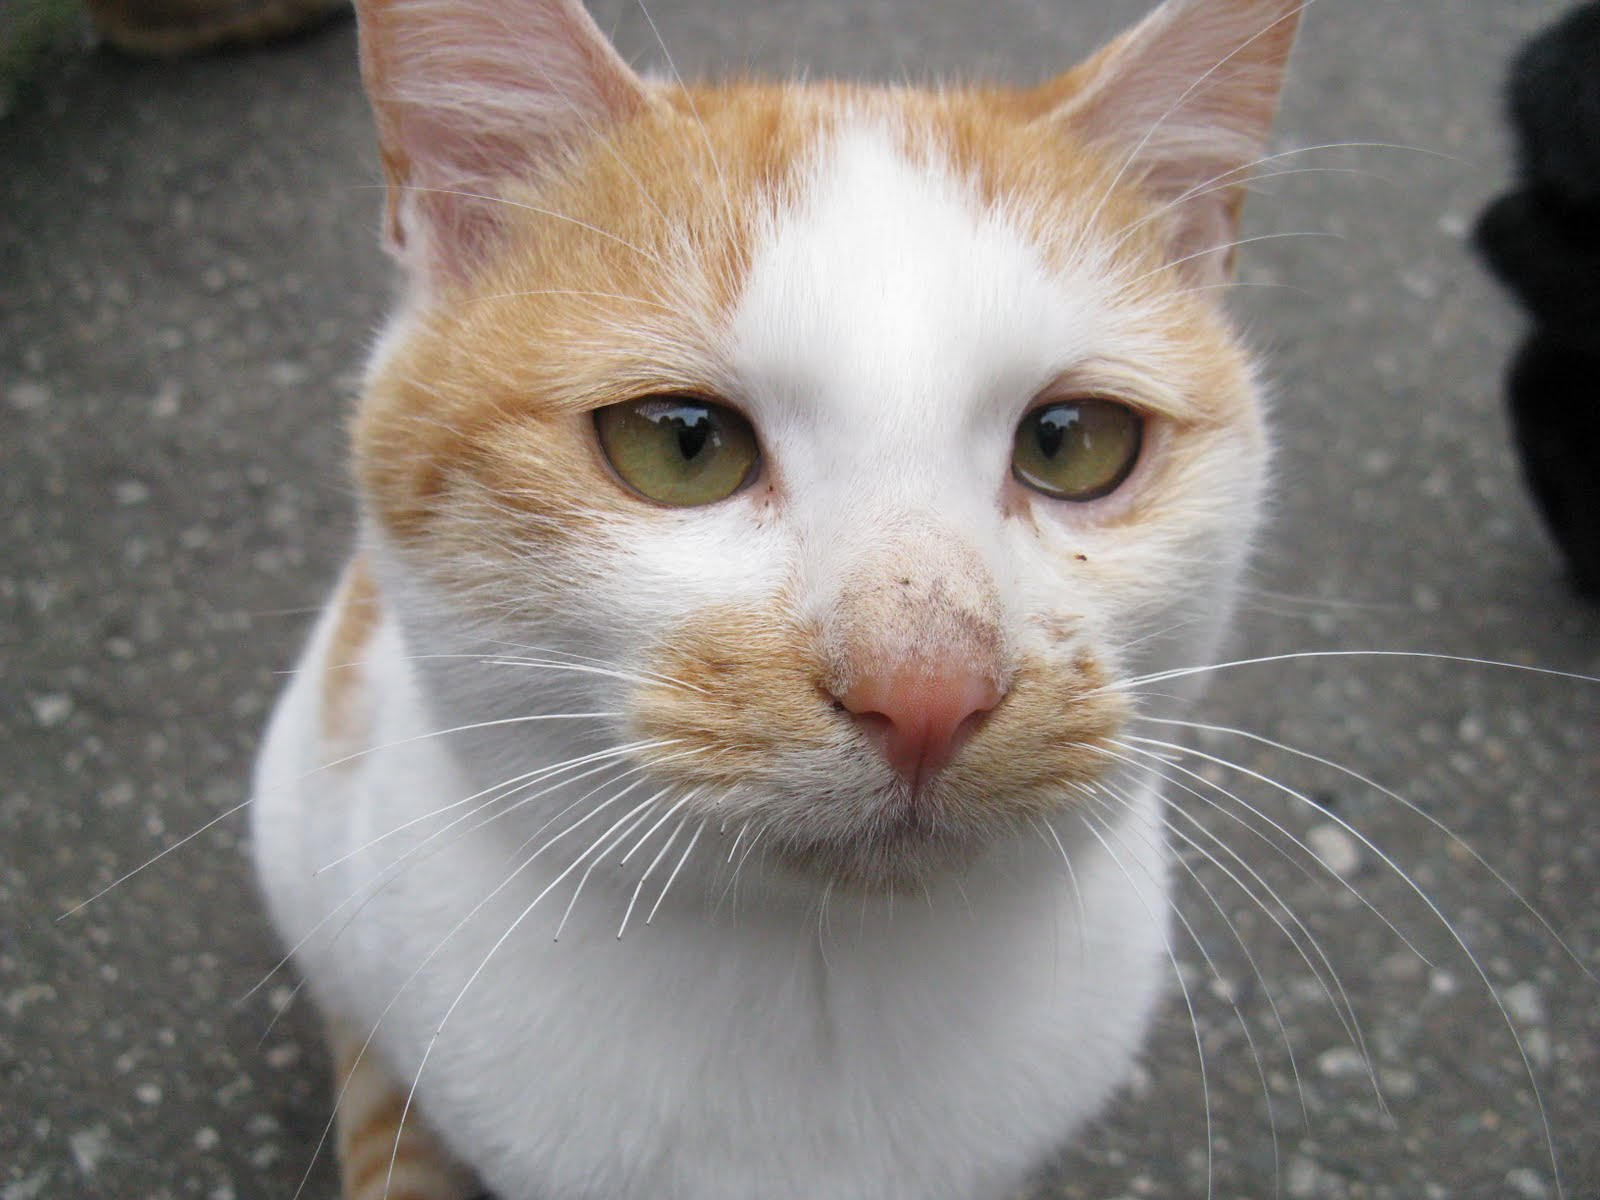 Can Stray Cats Give Dogs Diseases